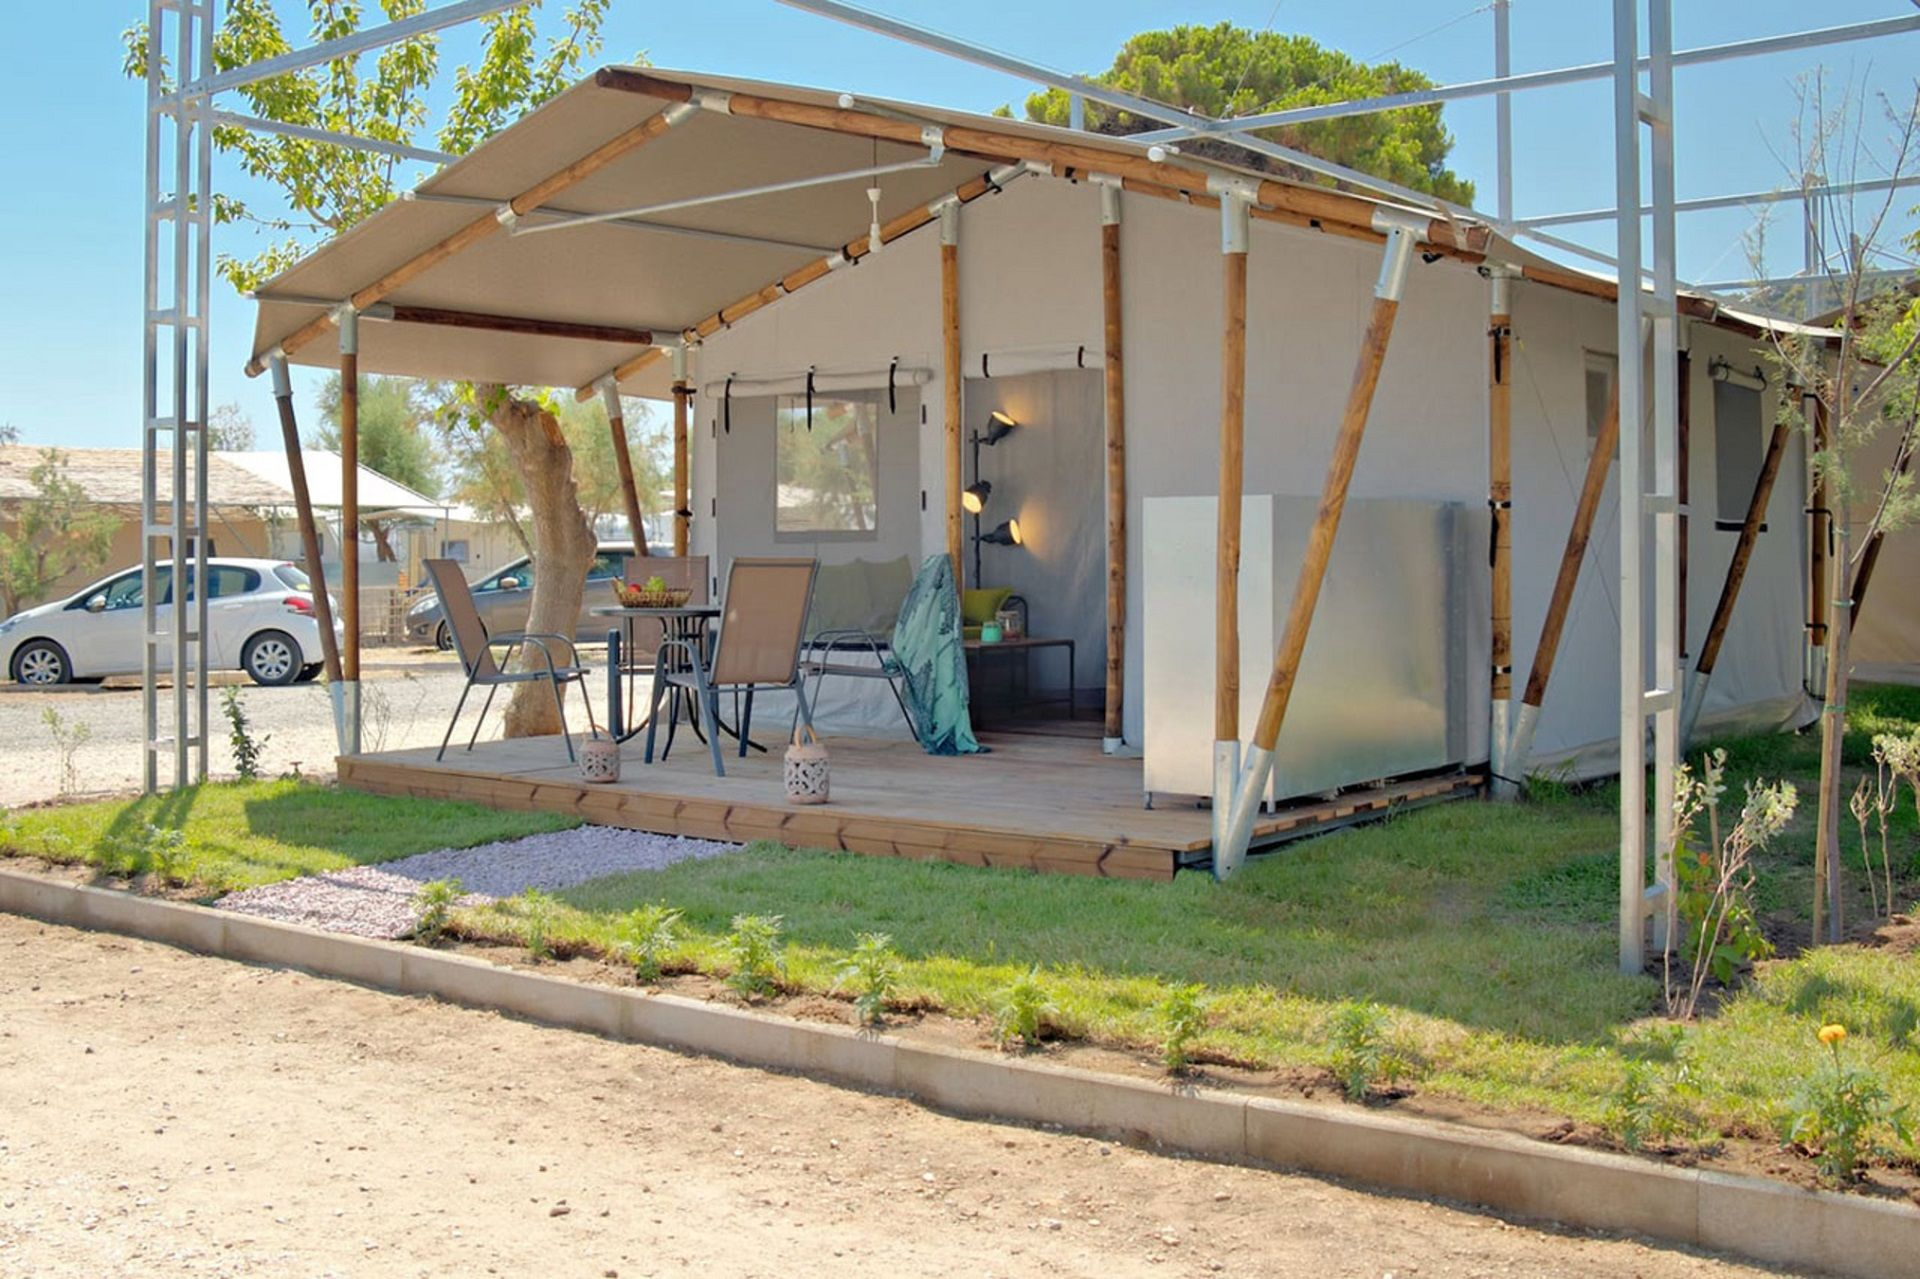 Armenistis Camping and Bungalows